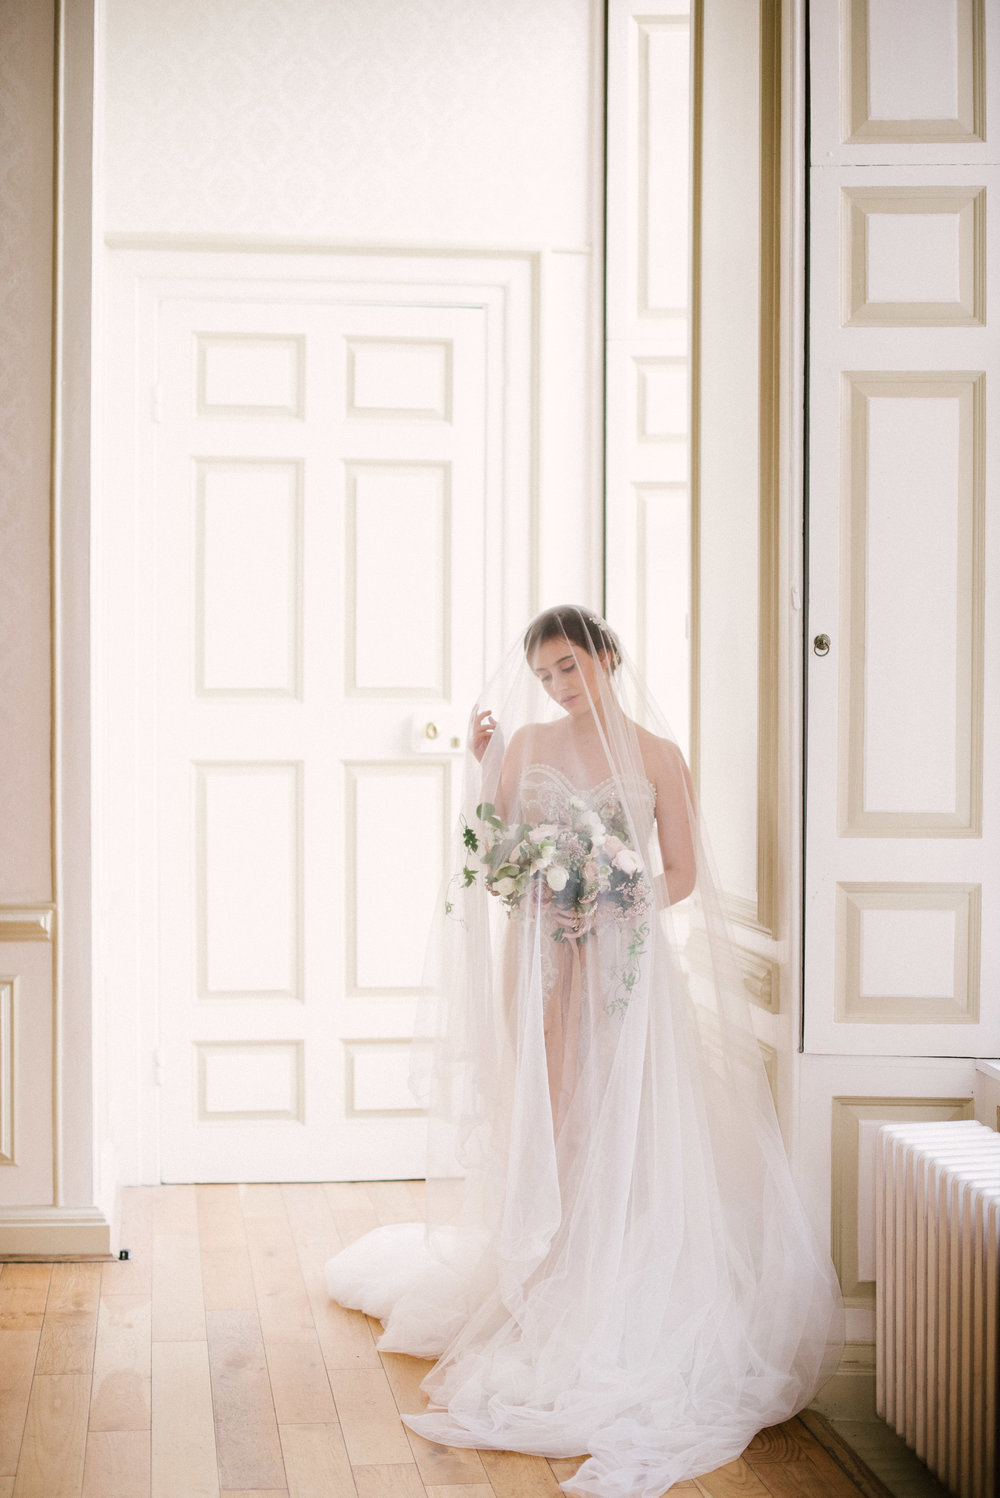 The Timeless Stylist-Elegant and Romantic Wedding Styling-Fine Art Bride-Bouquet under Veil.jpg